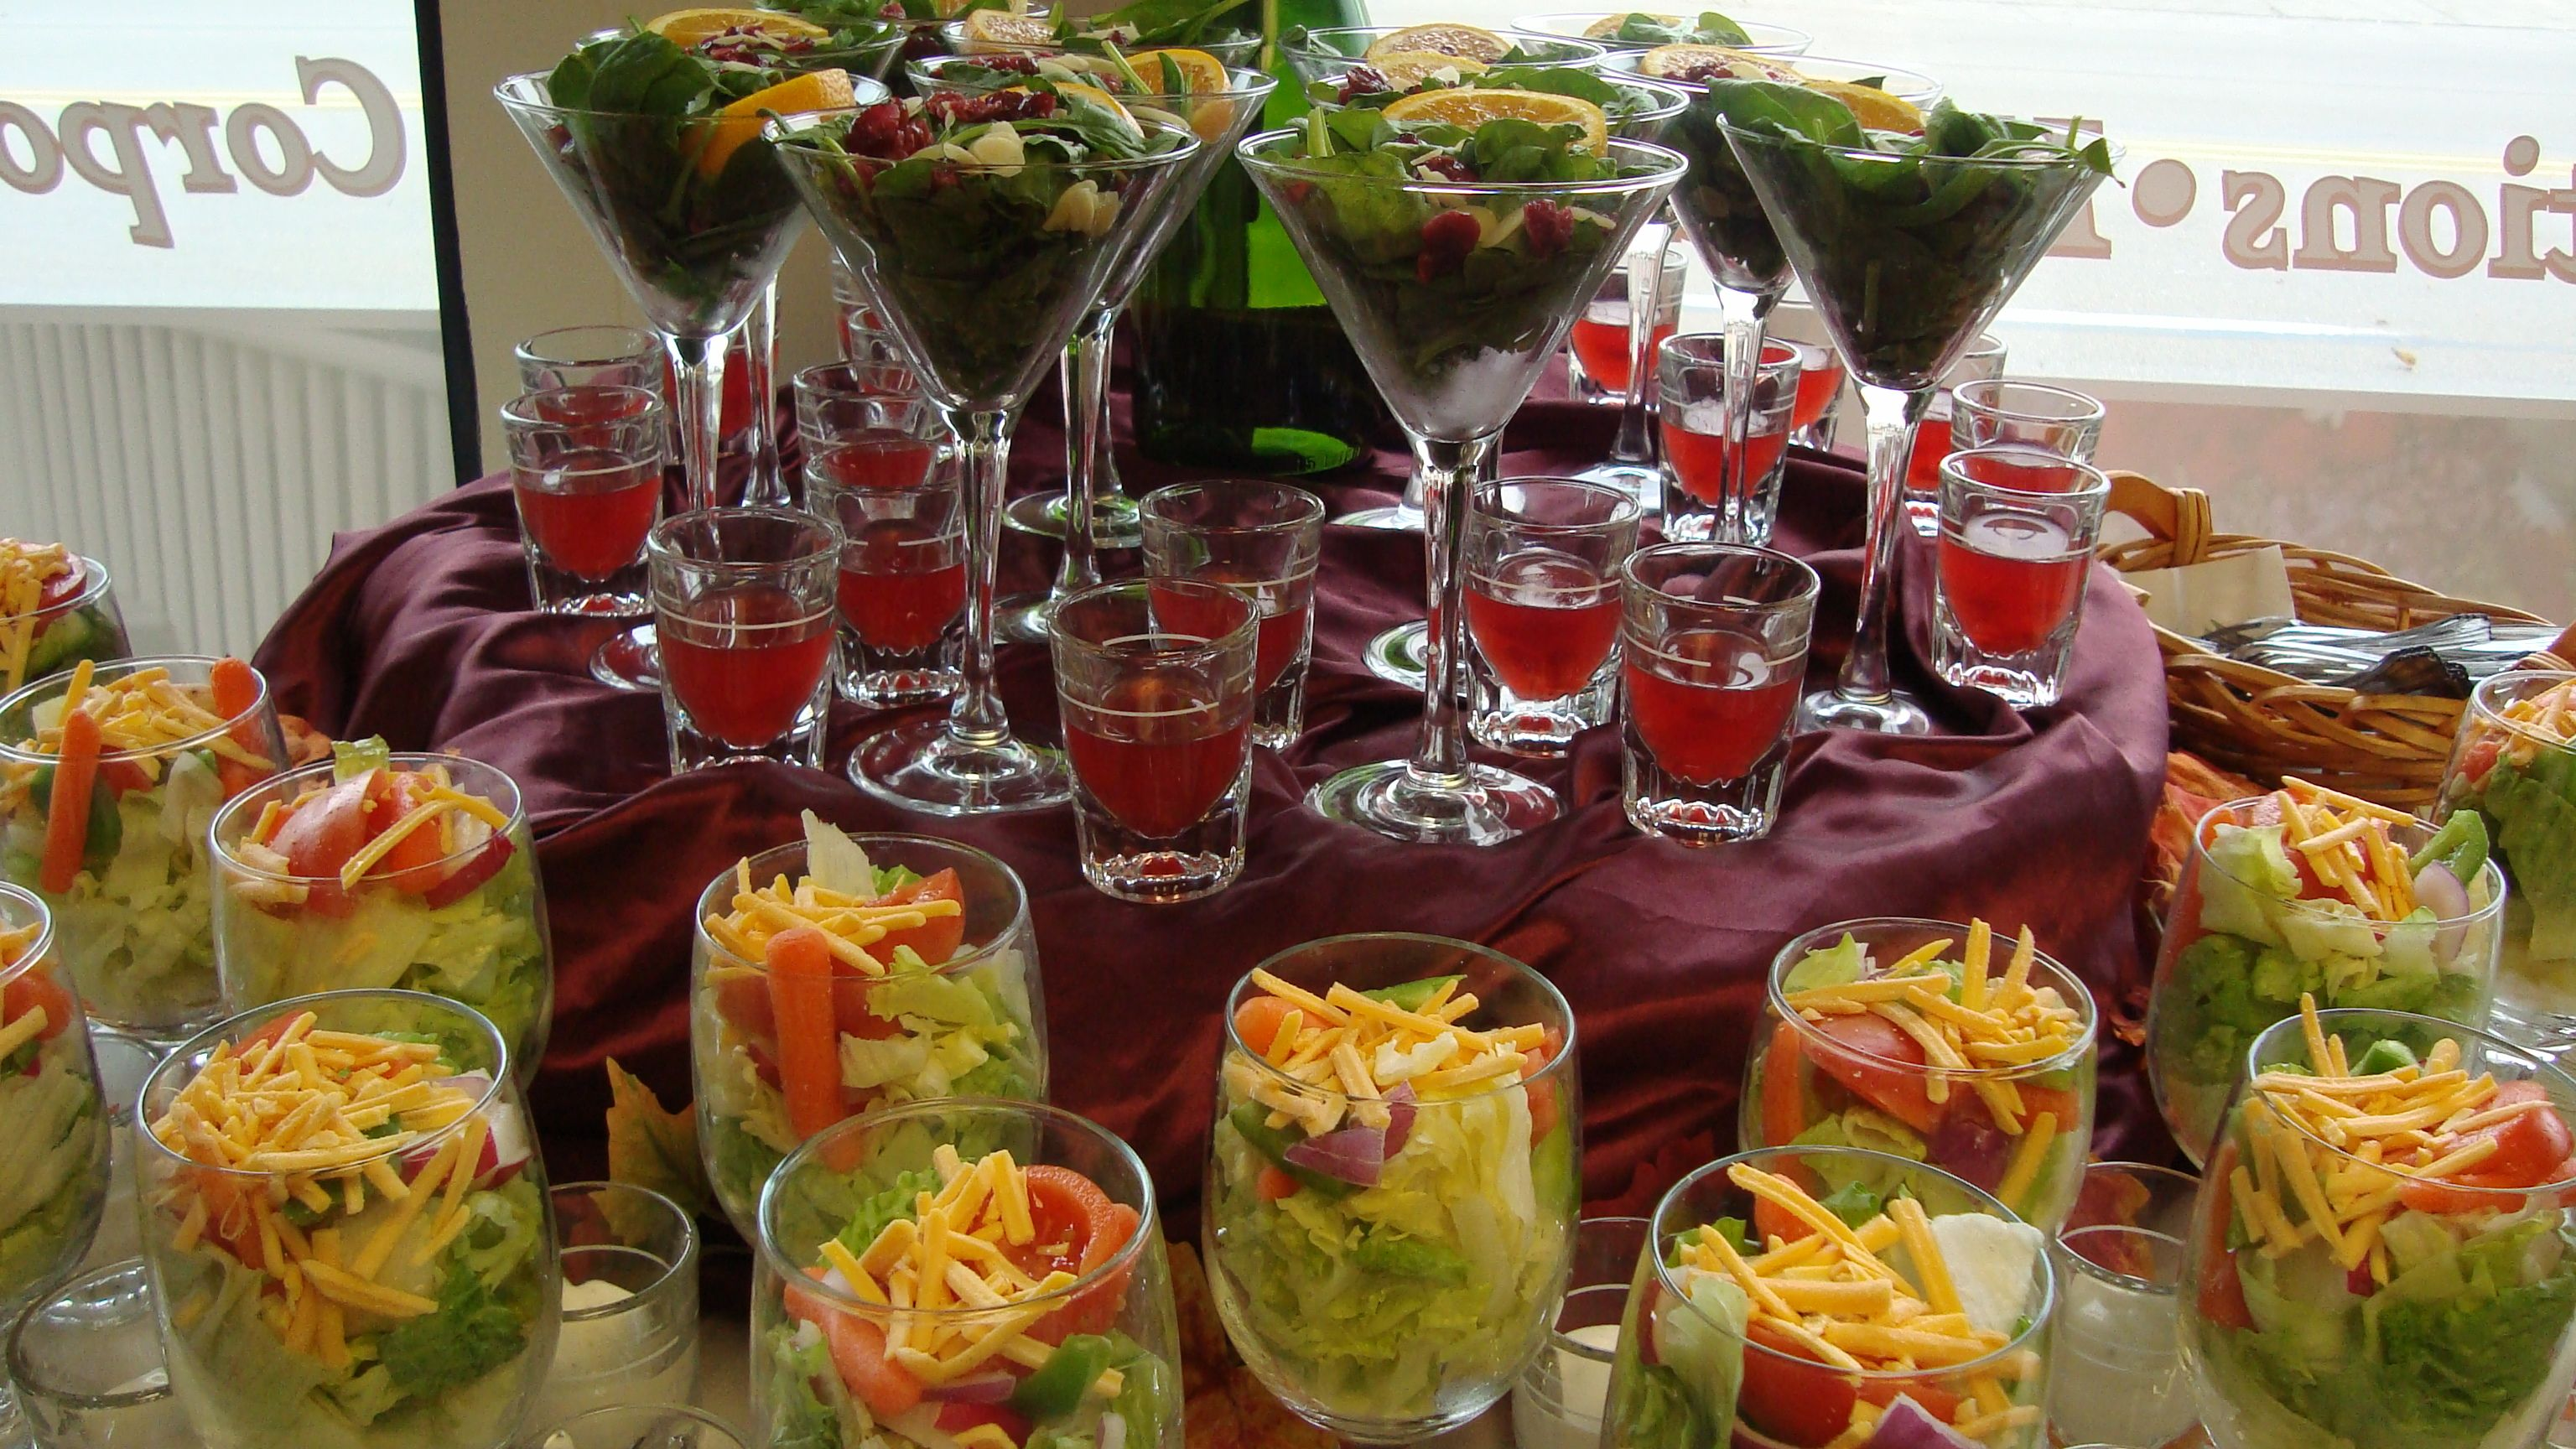 Catering and Salad